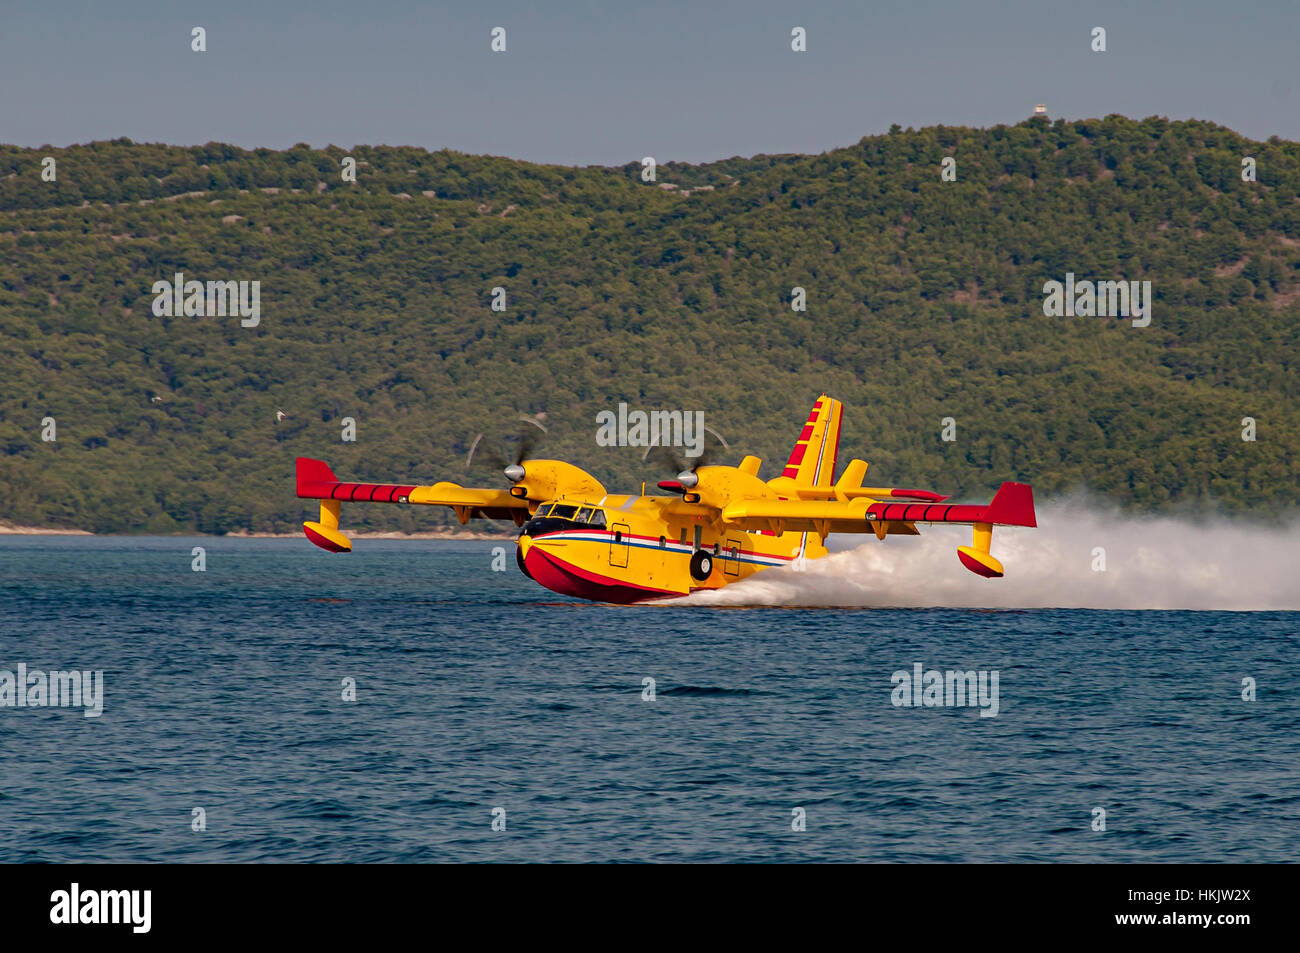 Yellow and red Canadair water bomber, turbo prop firefighting aircraft in action, scooping water - Stock Image